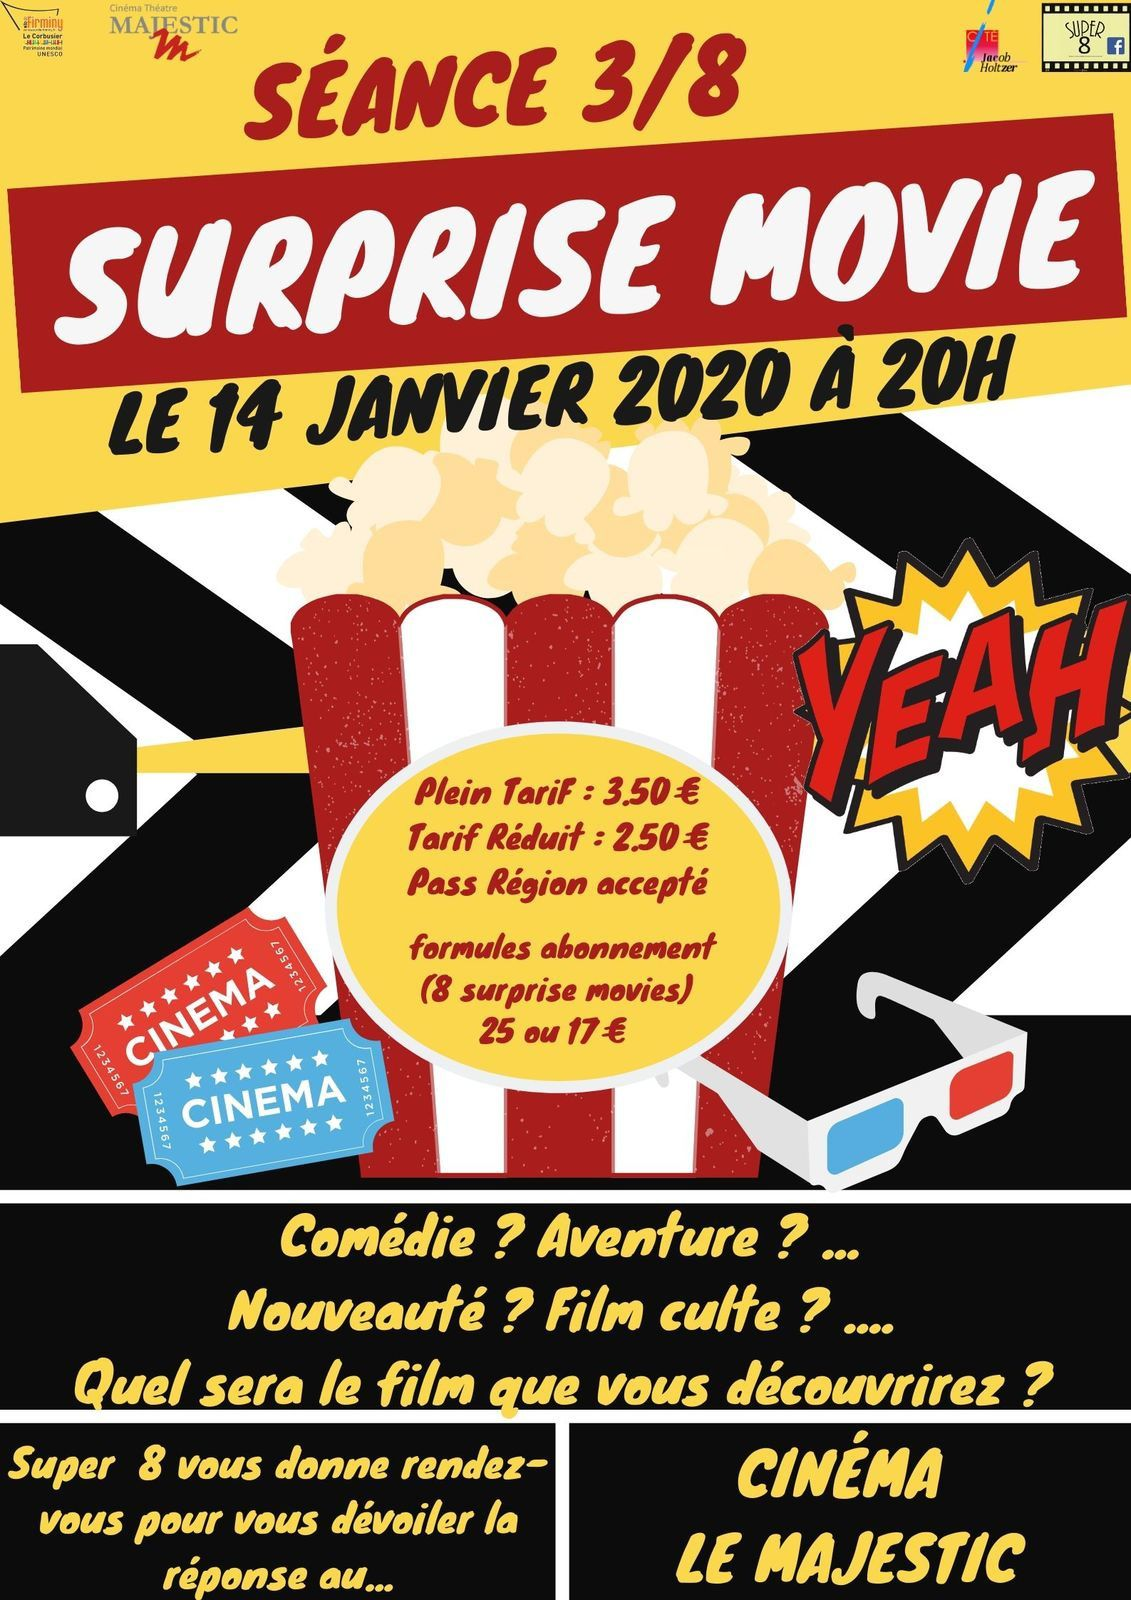 Surprise Movie 3/8 : les indices !